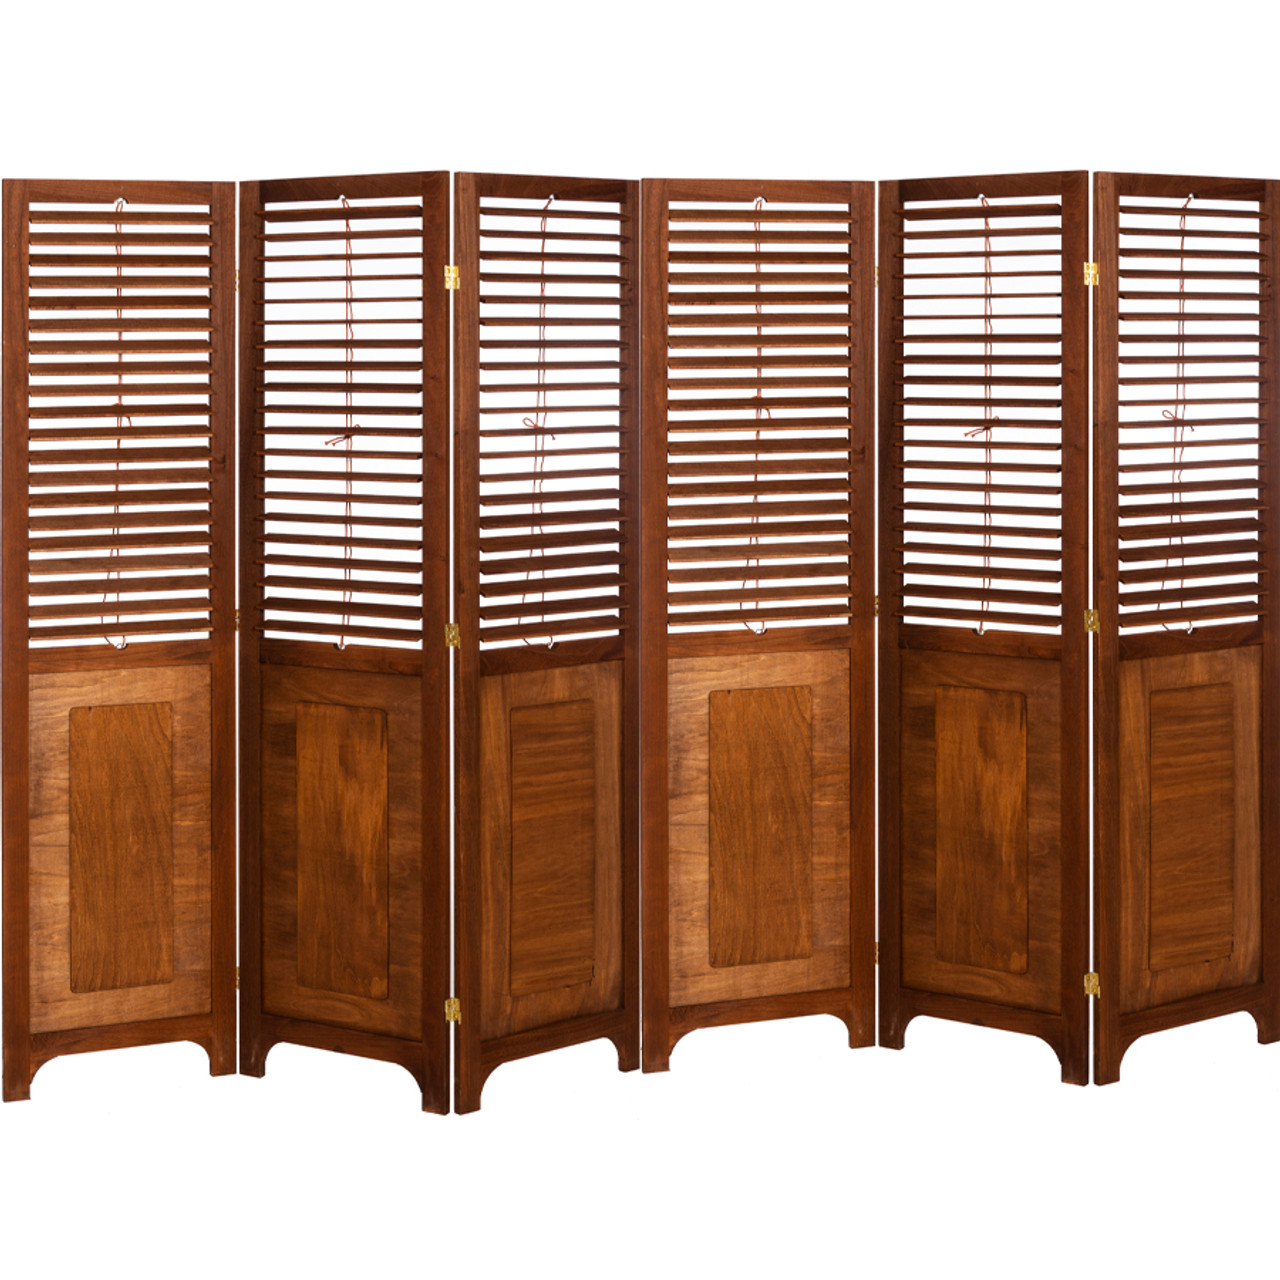 3 or 6 Panel Solid Wood Screen Room Divider with Adjustable Shutters on Top Half, Walnut Brown Color